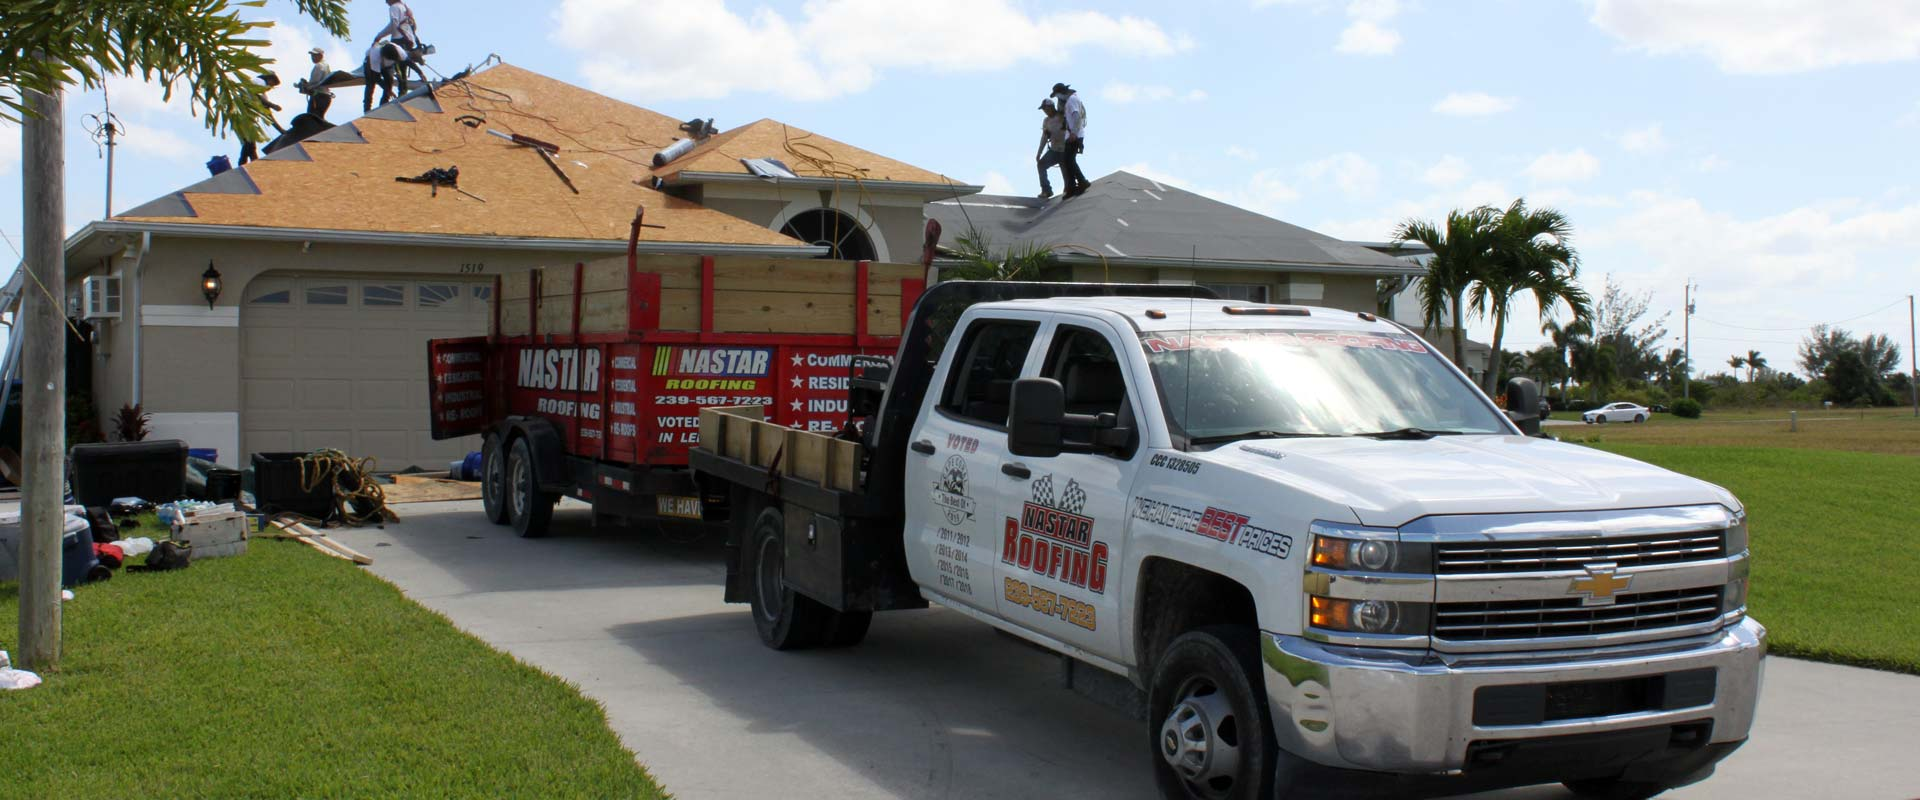 Nastar Roofing replaces your shingle roof with the latest energy saving shingles